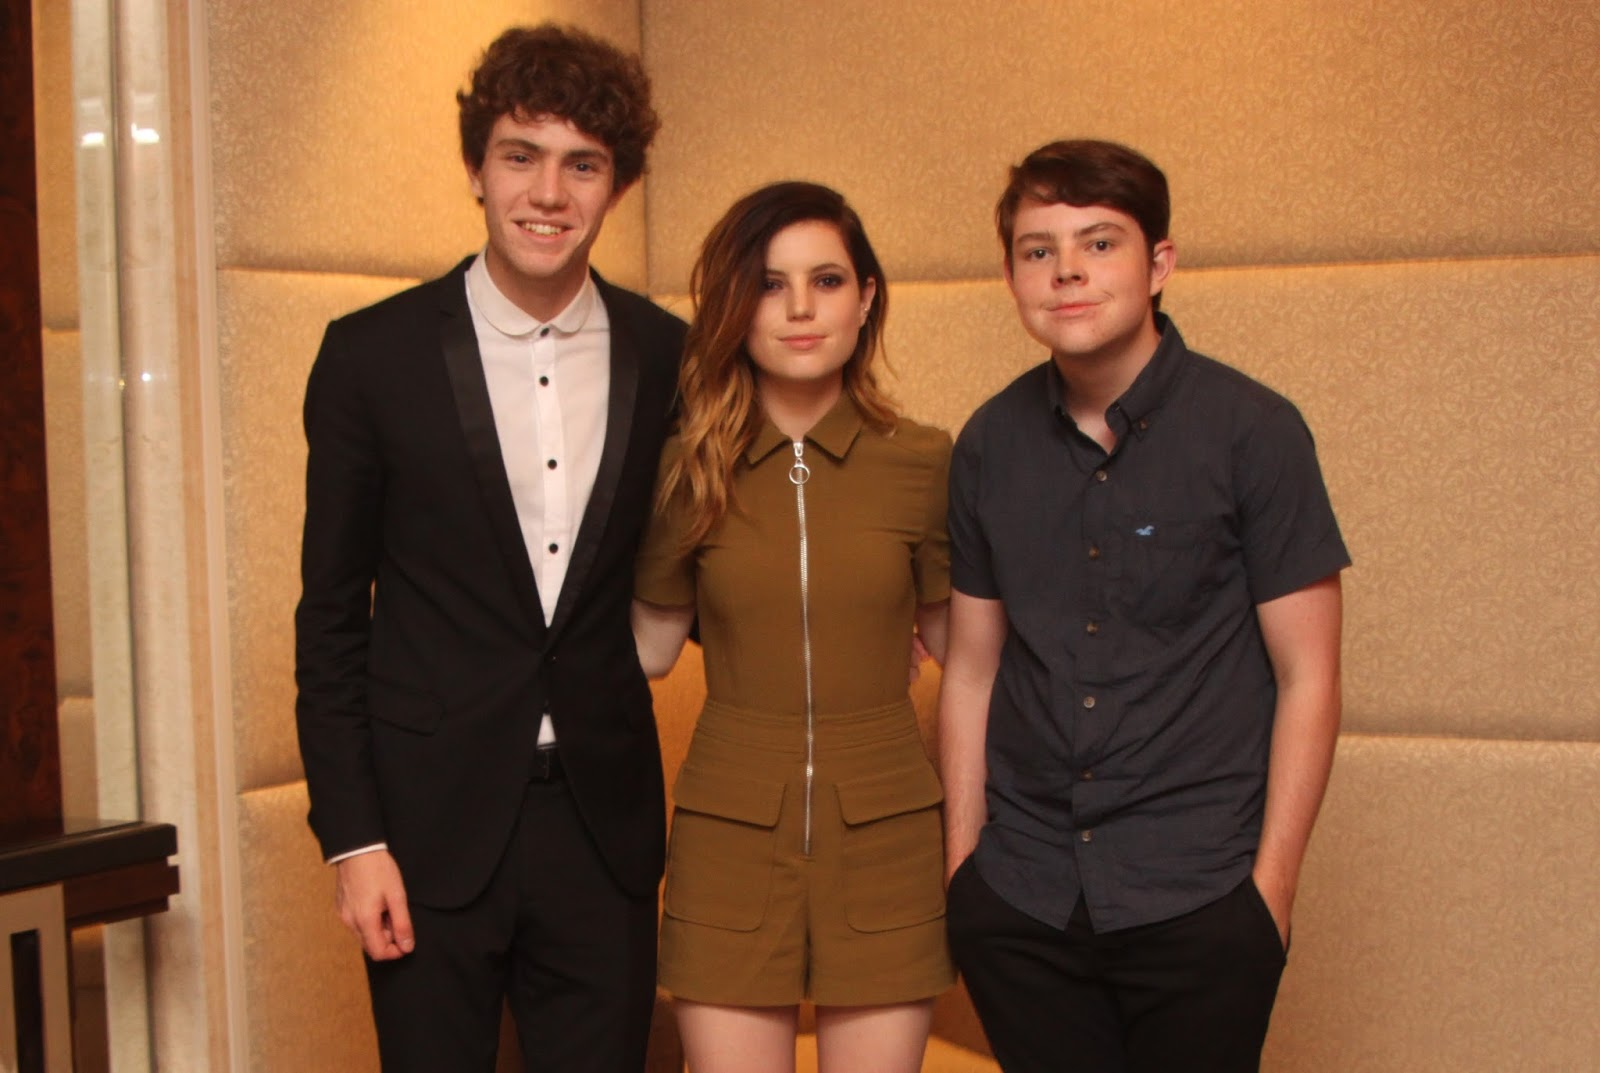 Our exclusive interview with Echosmith!